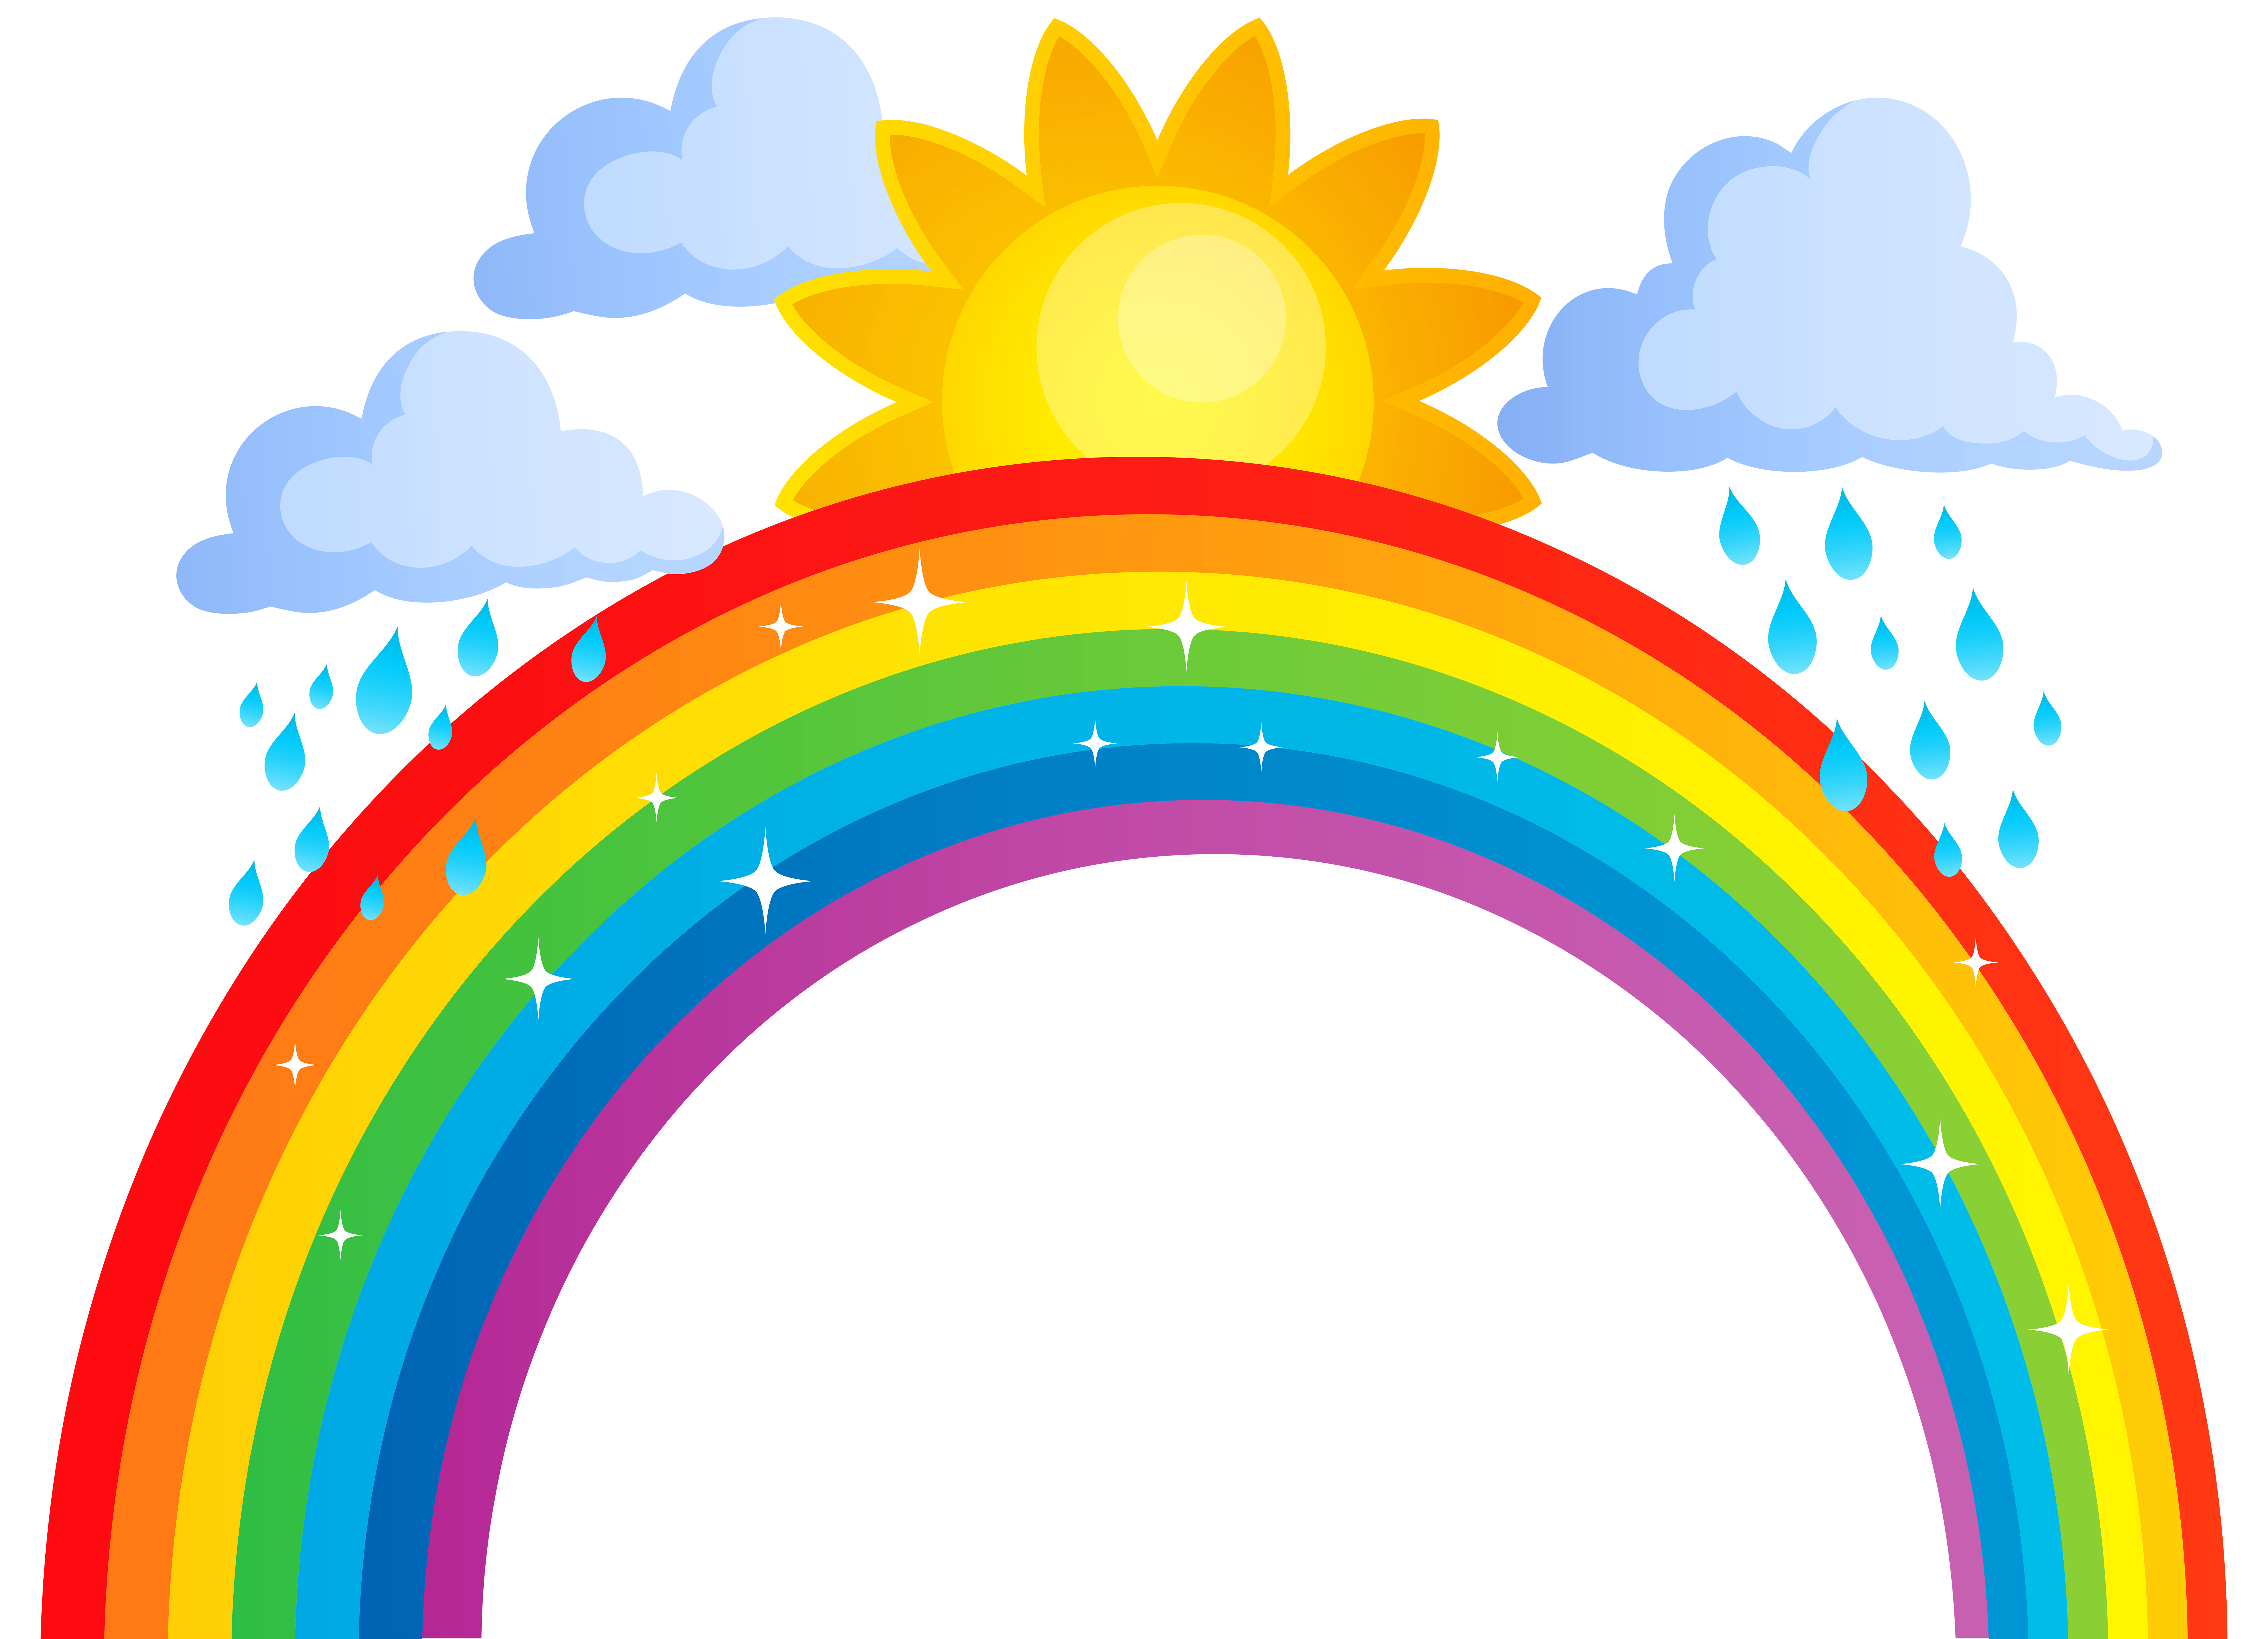 Clipart rainbow printable. Sun and clouds png